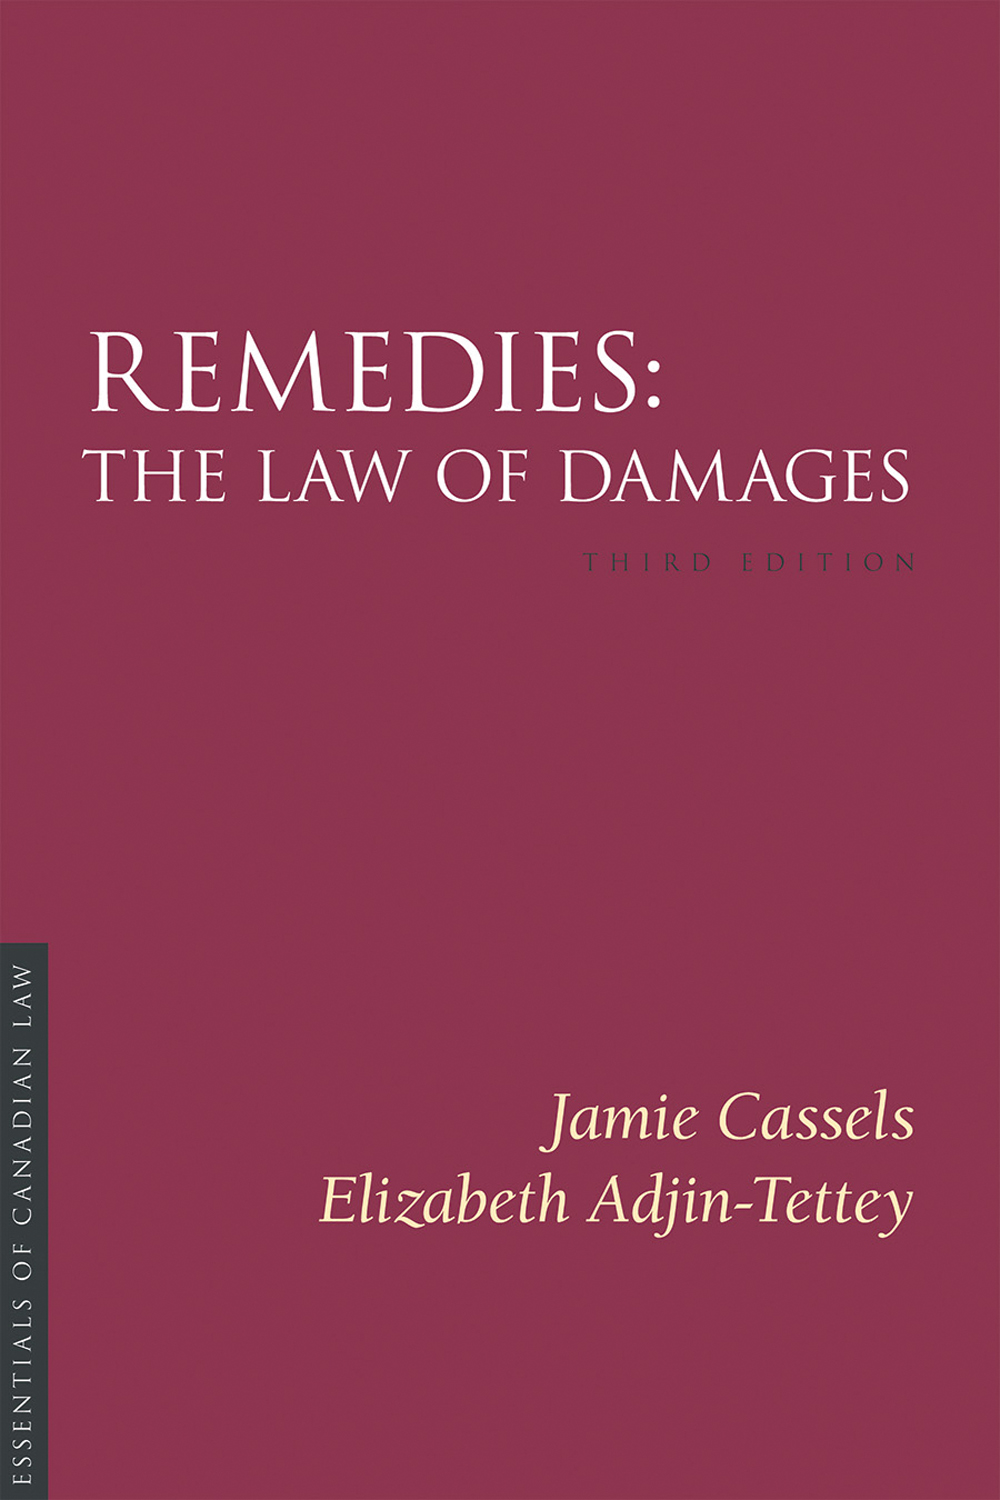 Book cover for Remedies: The Law of Damages by Jamie Cassels and Elizabeth Adjin-Tettey. As a book in the Essentials of Canadian Law series, the cover is a solid burgundy colour with a simple type treatment in capital serif letters in white.